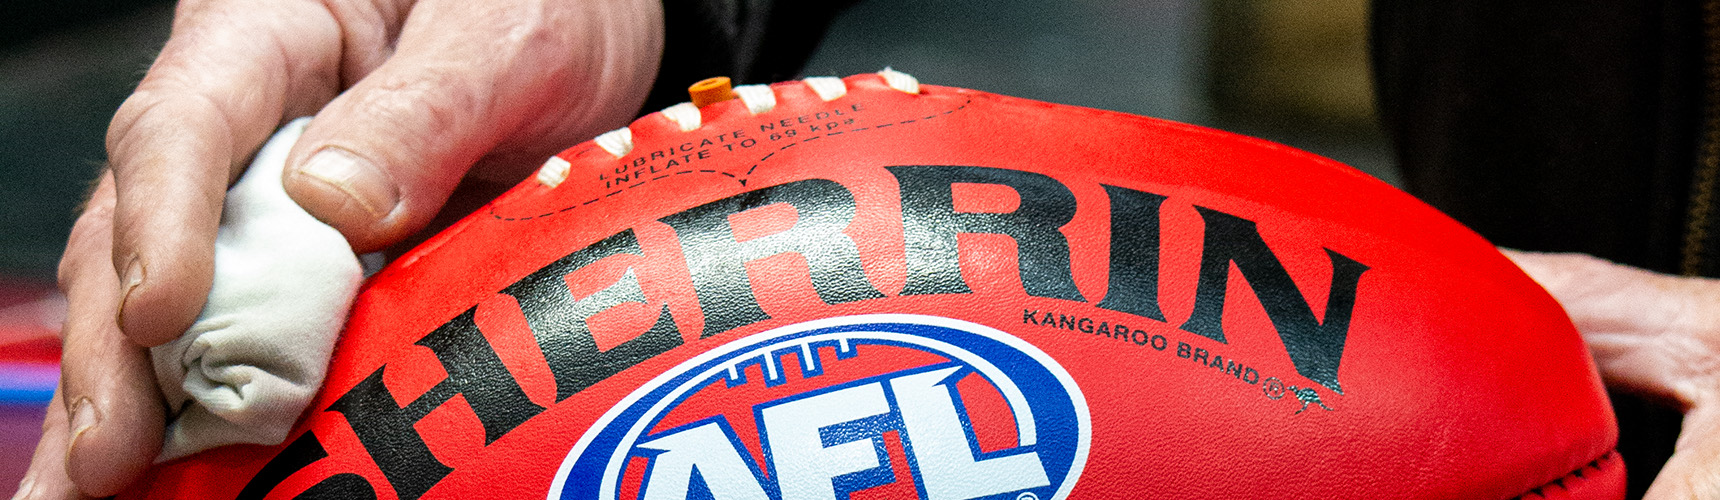 Maintenance & Care guide for your Sherrin football